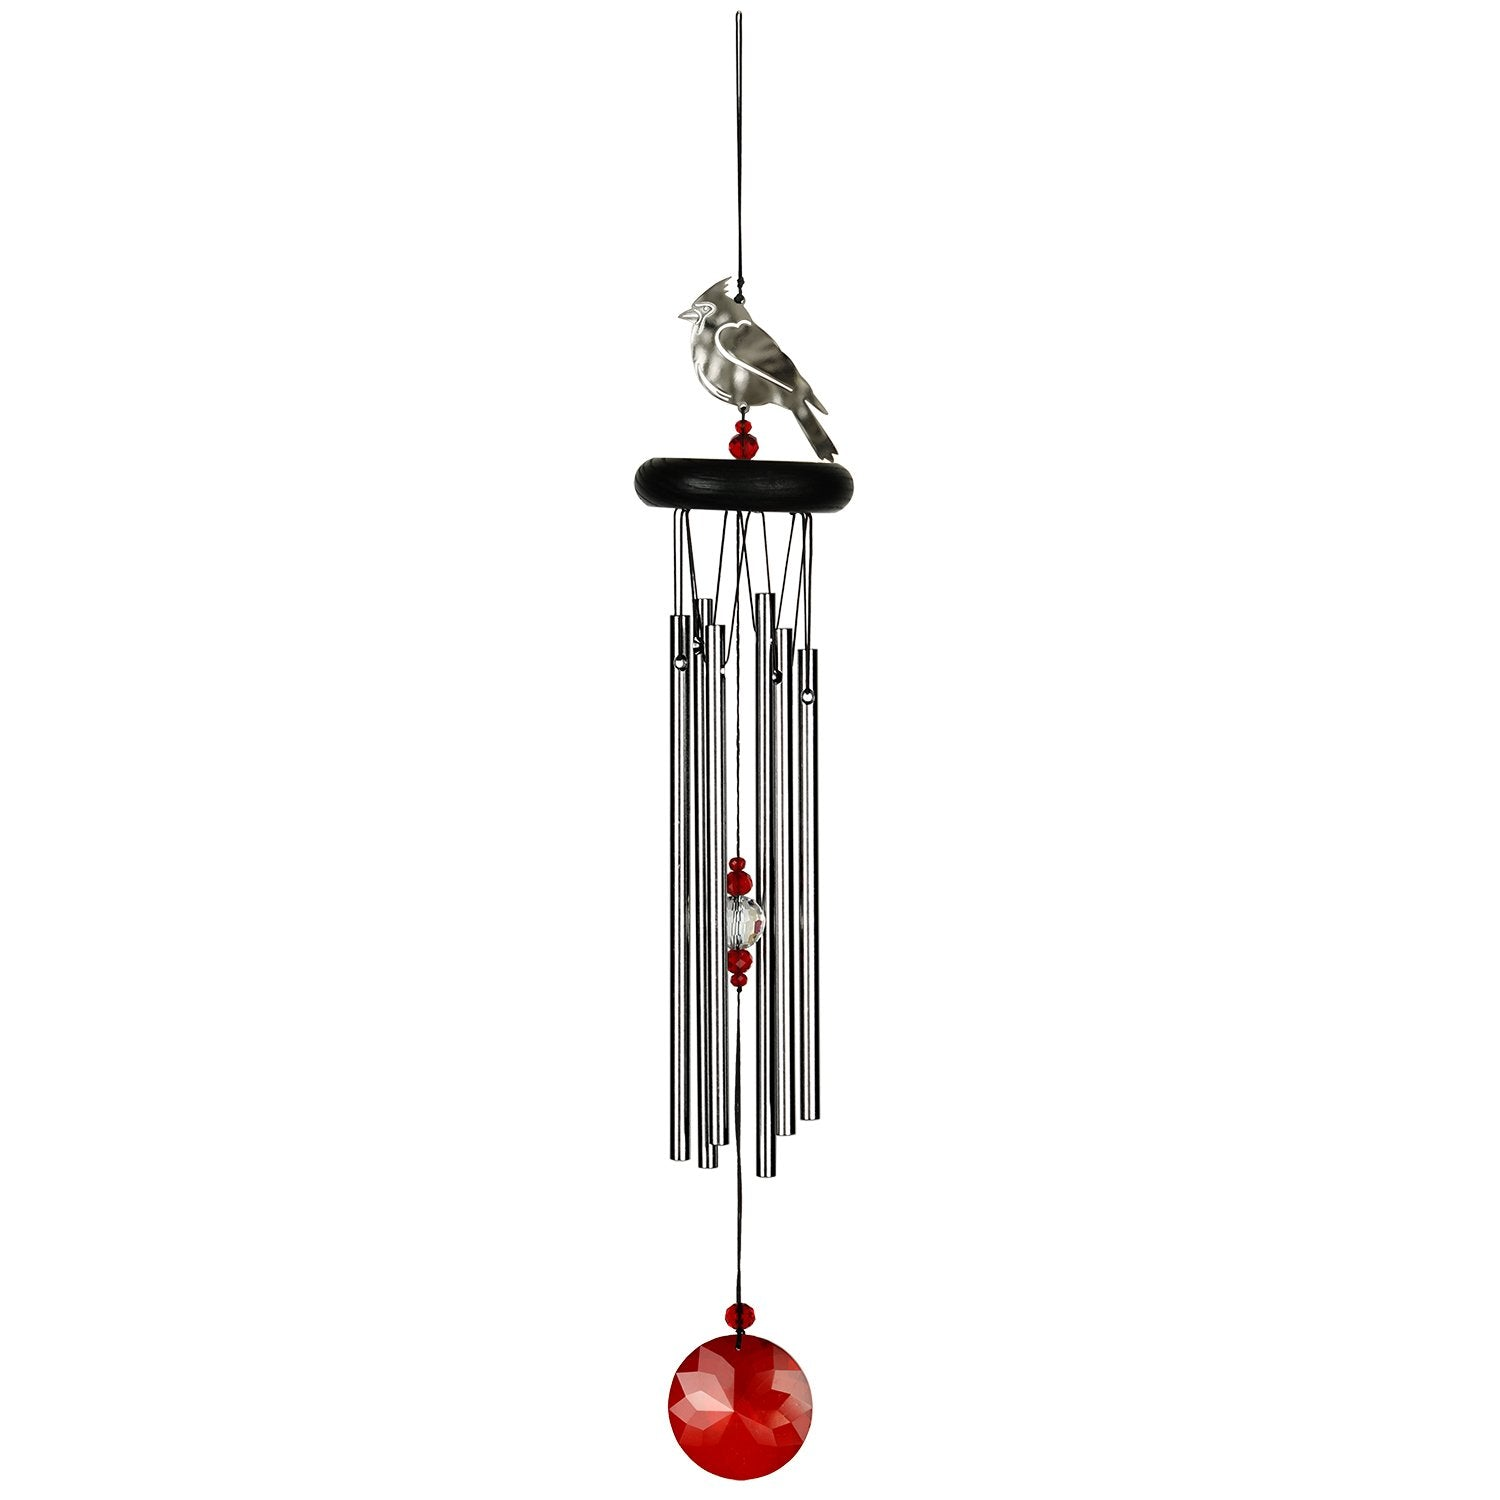 Crystal Cardinal Chime full product image